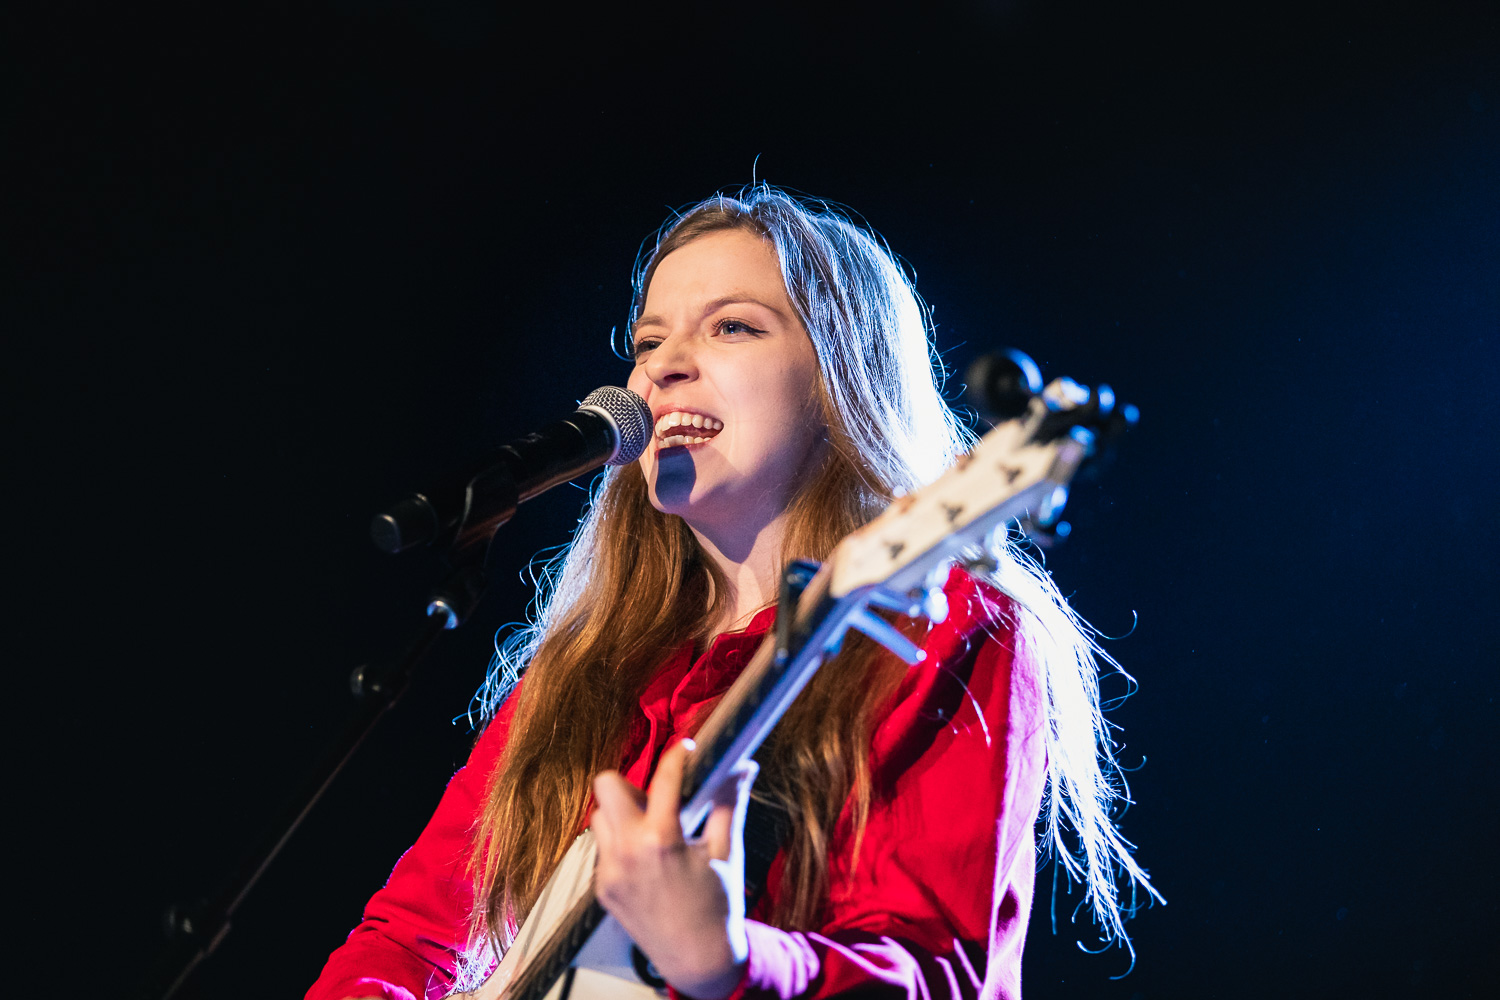 Supporting Hozier, Jade Bird from across the pond, playing in SLC. Photo: @Lmsorenson